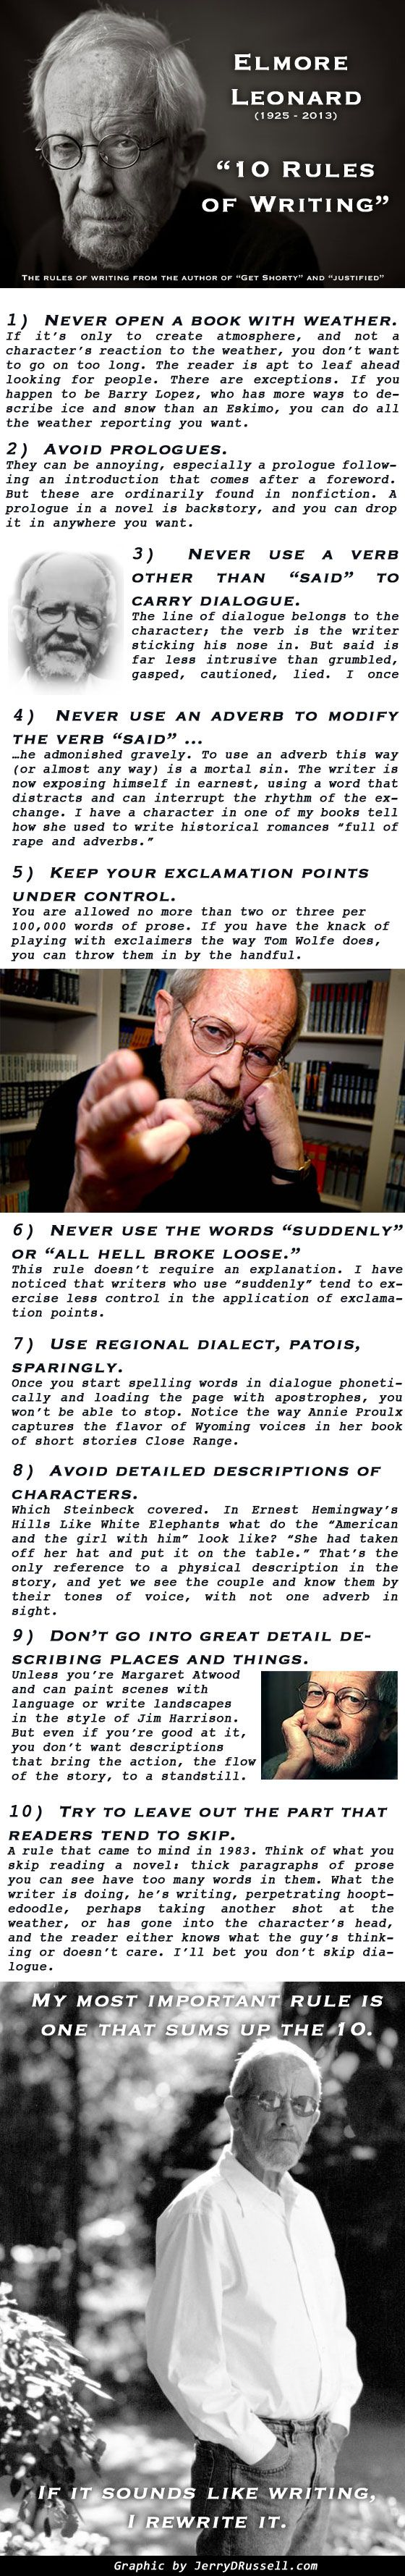 Elmore Leonard's Rules for Writing - A Tribute to a Great Writer [infographic]